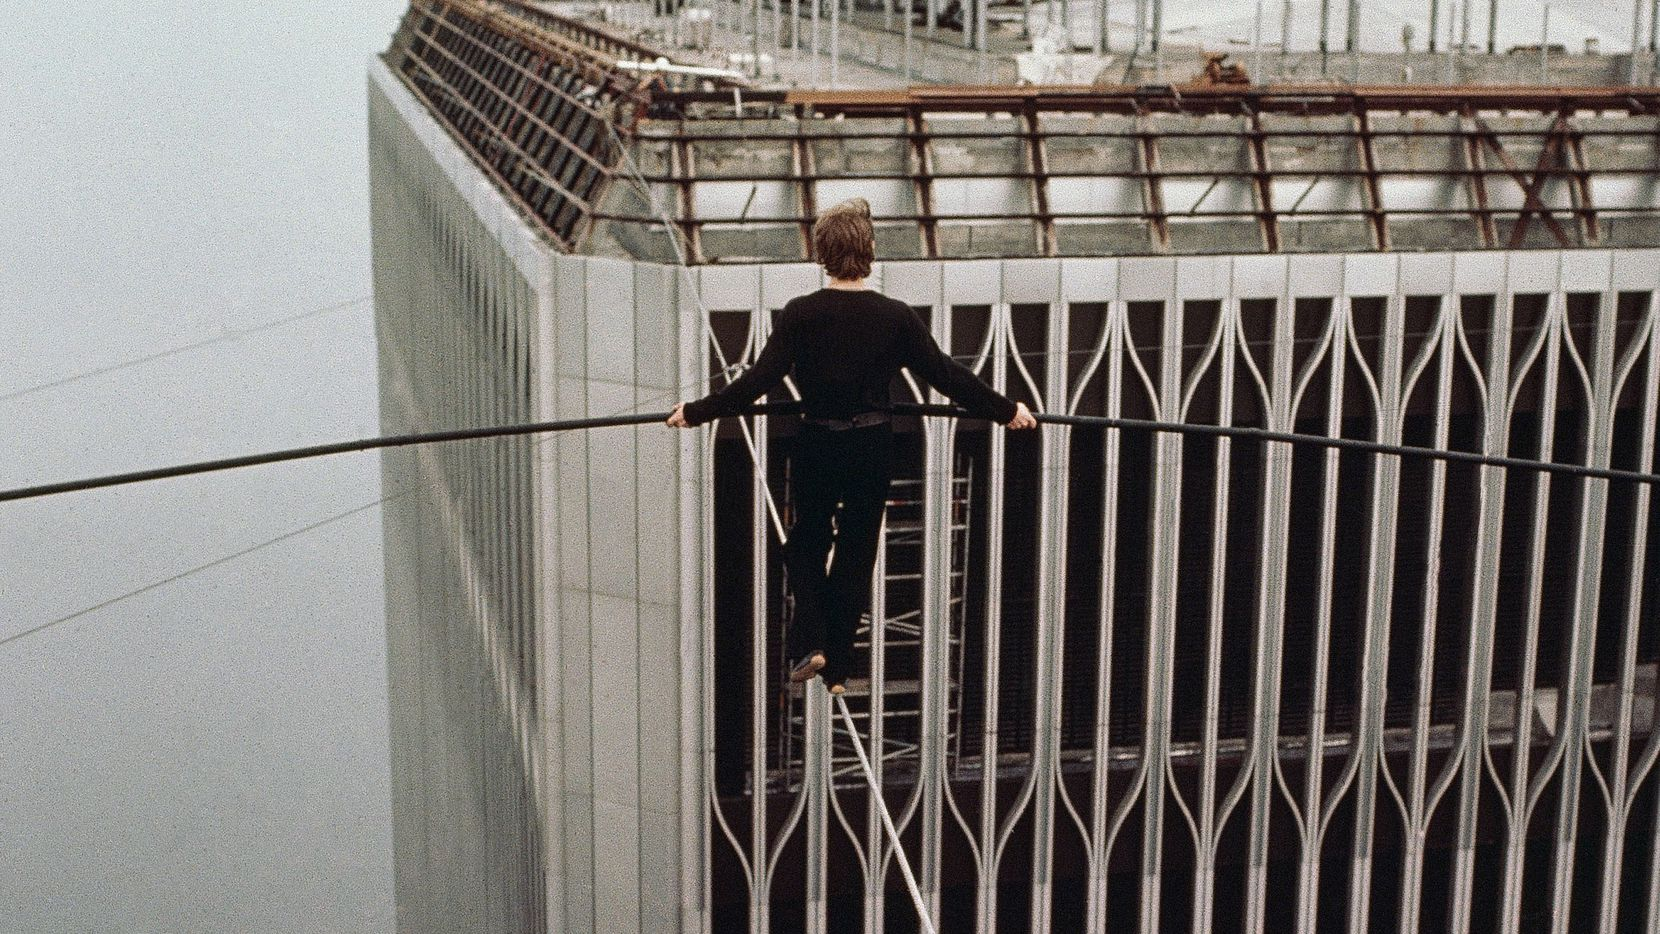 French high-wire artist Philippe Petit walked a tightrope between the twin towers of the World Trade Center in New York City in 1974.